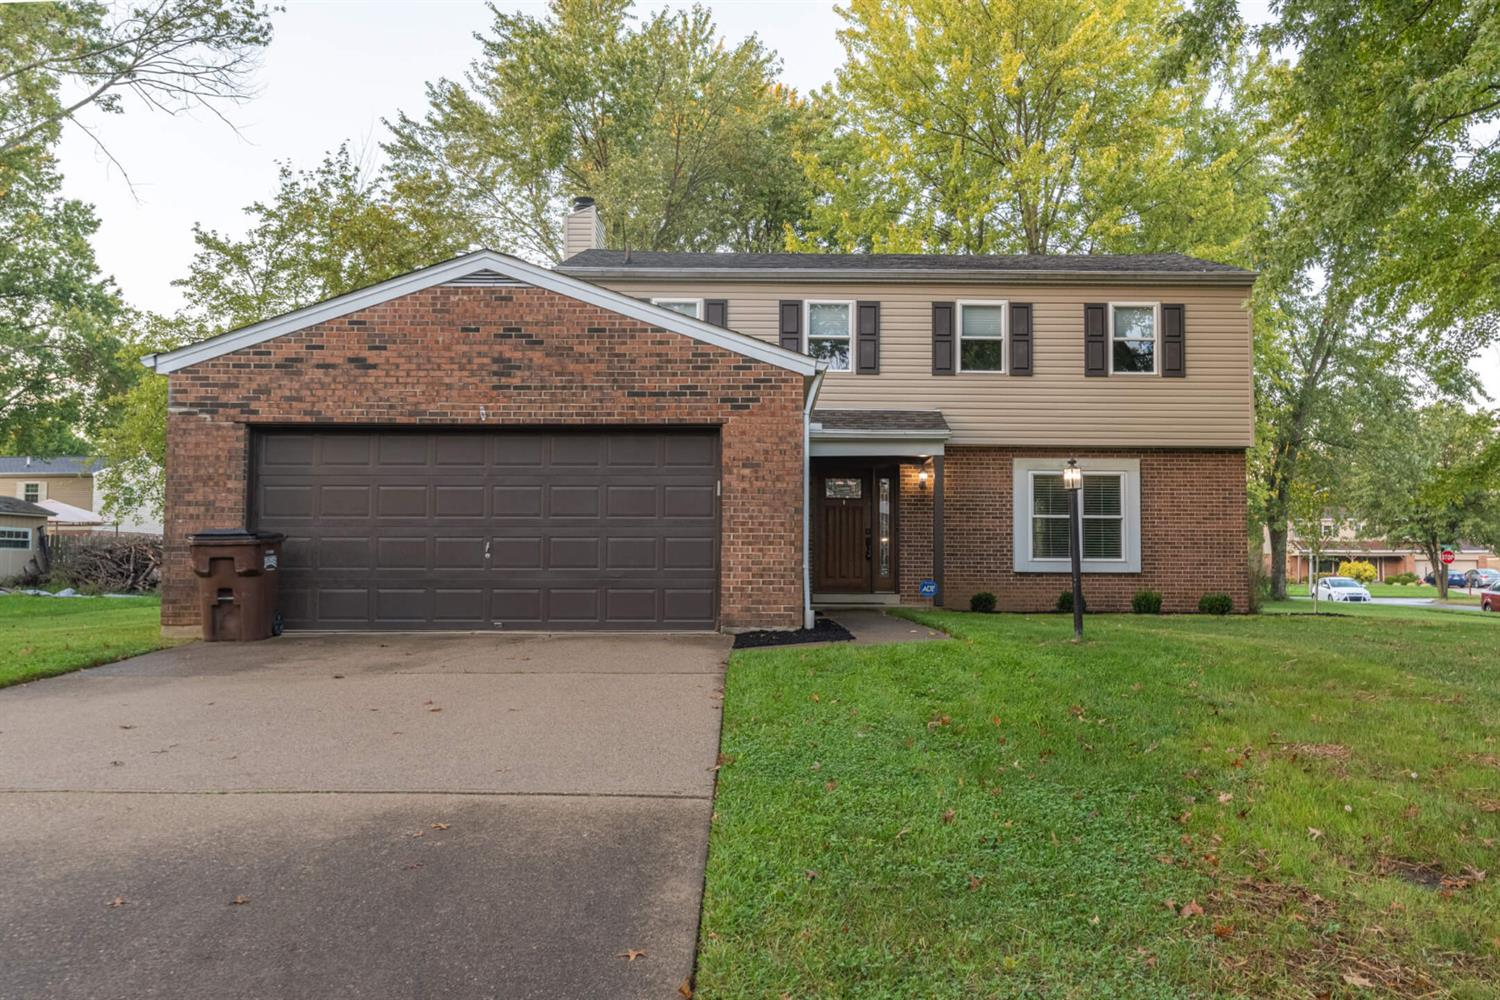 1930 Mellow Wood Lane, Loveland, Ohio 45140, 4 Bedrooms Bedrooms, 10 Rooms Rooms,2 BathroomsBathrooms,Single Family Residence,For Sale,Mellow Wood,1719311